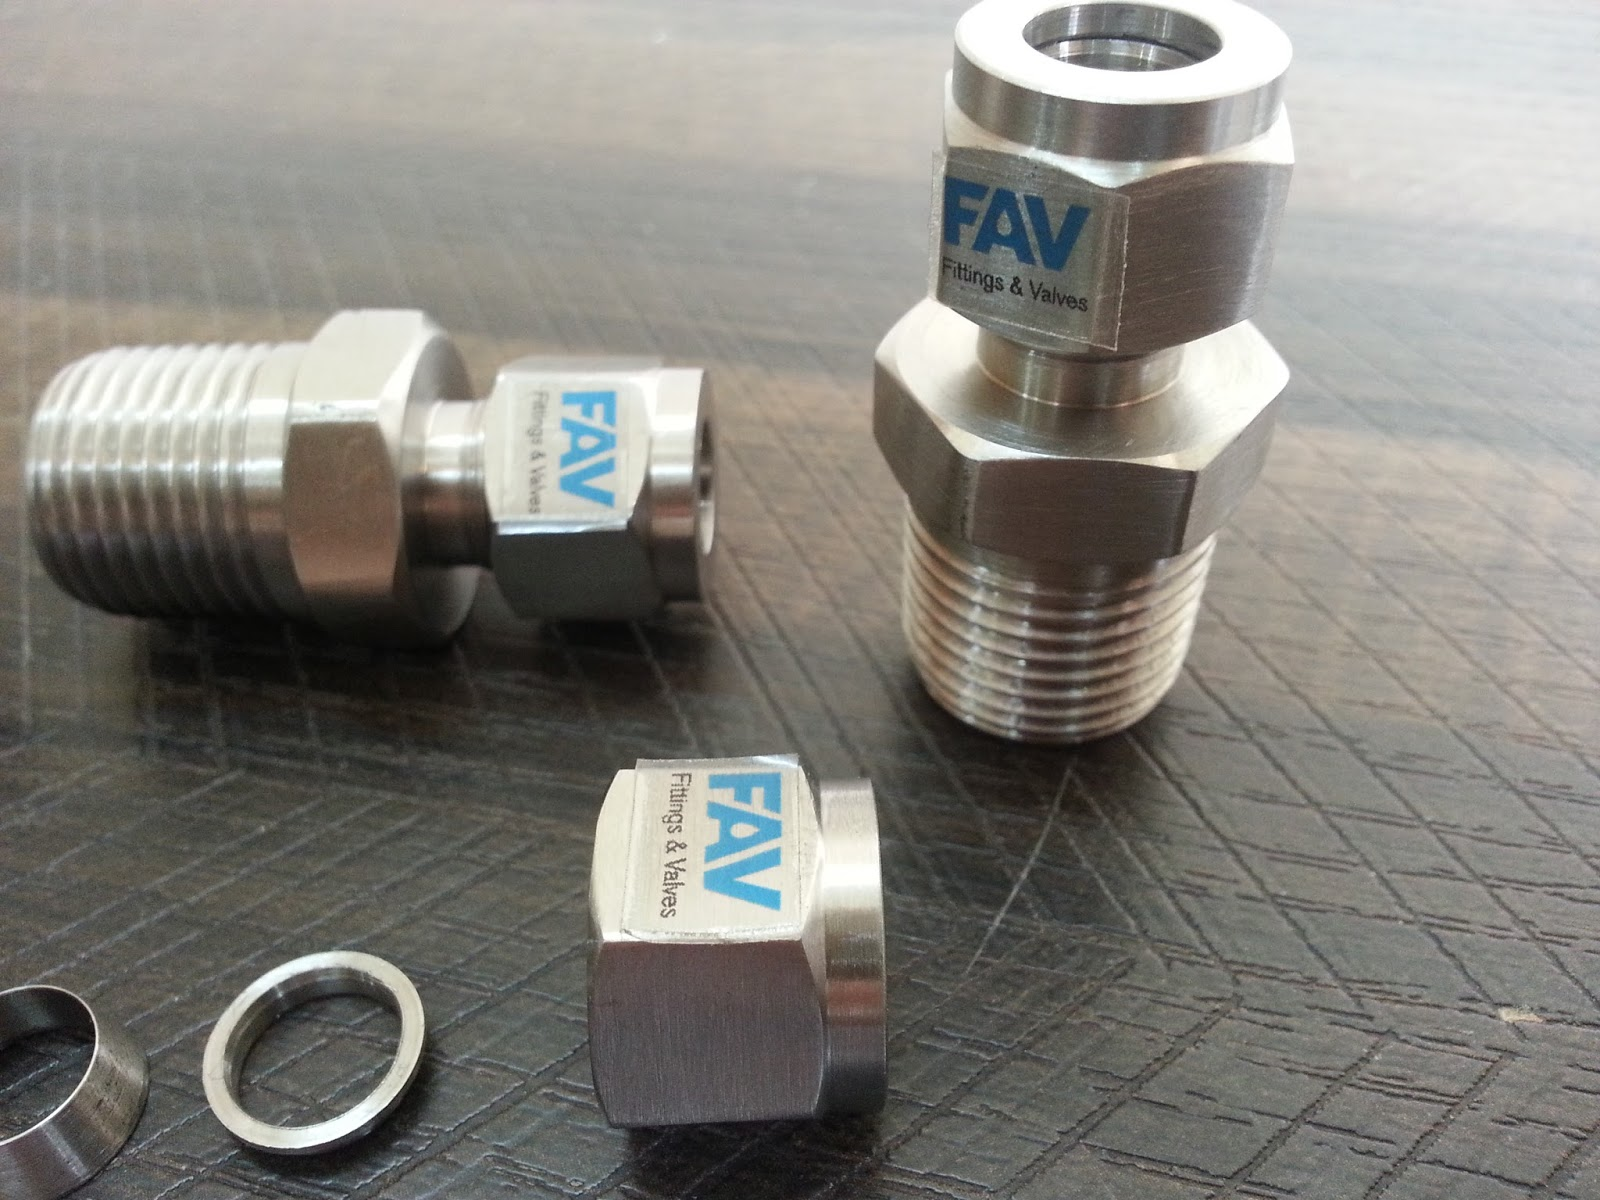 Fav monel double ferrule compression tube fittings